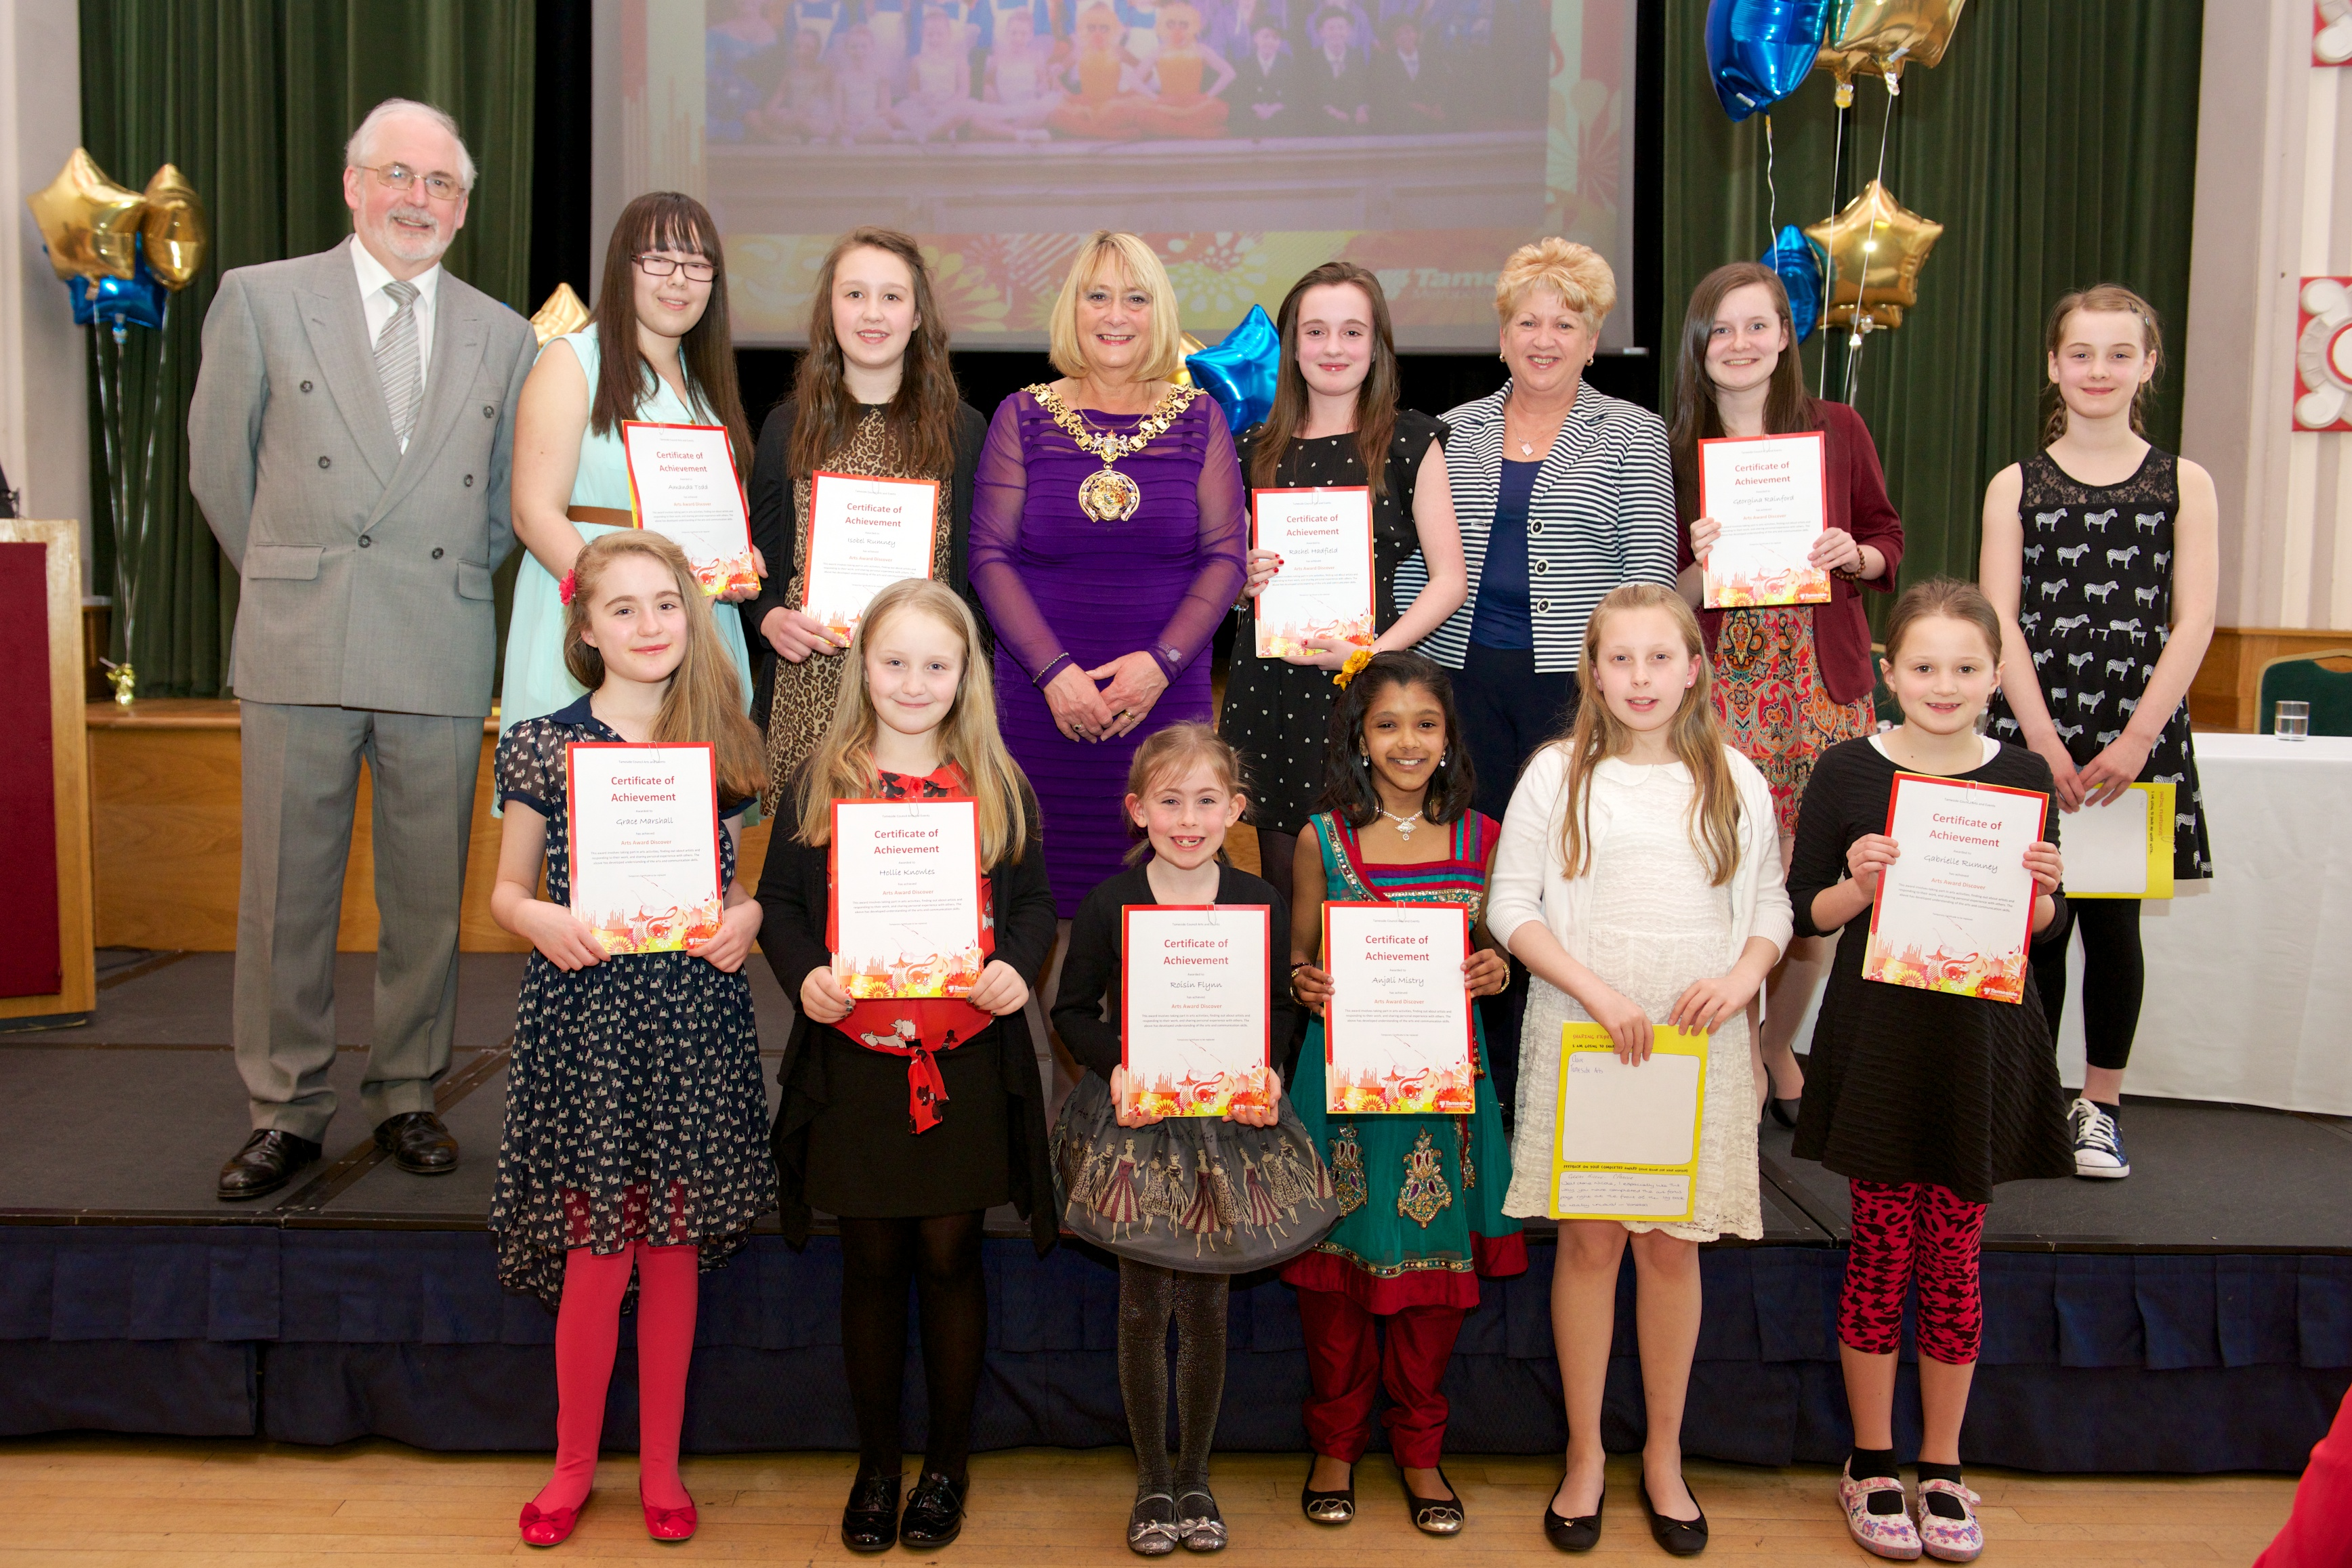 Arts Awards 2013